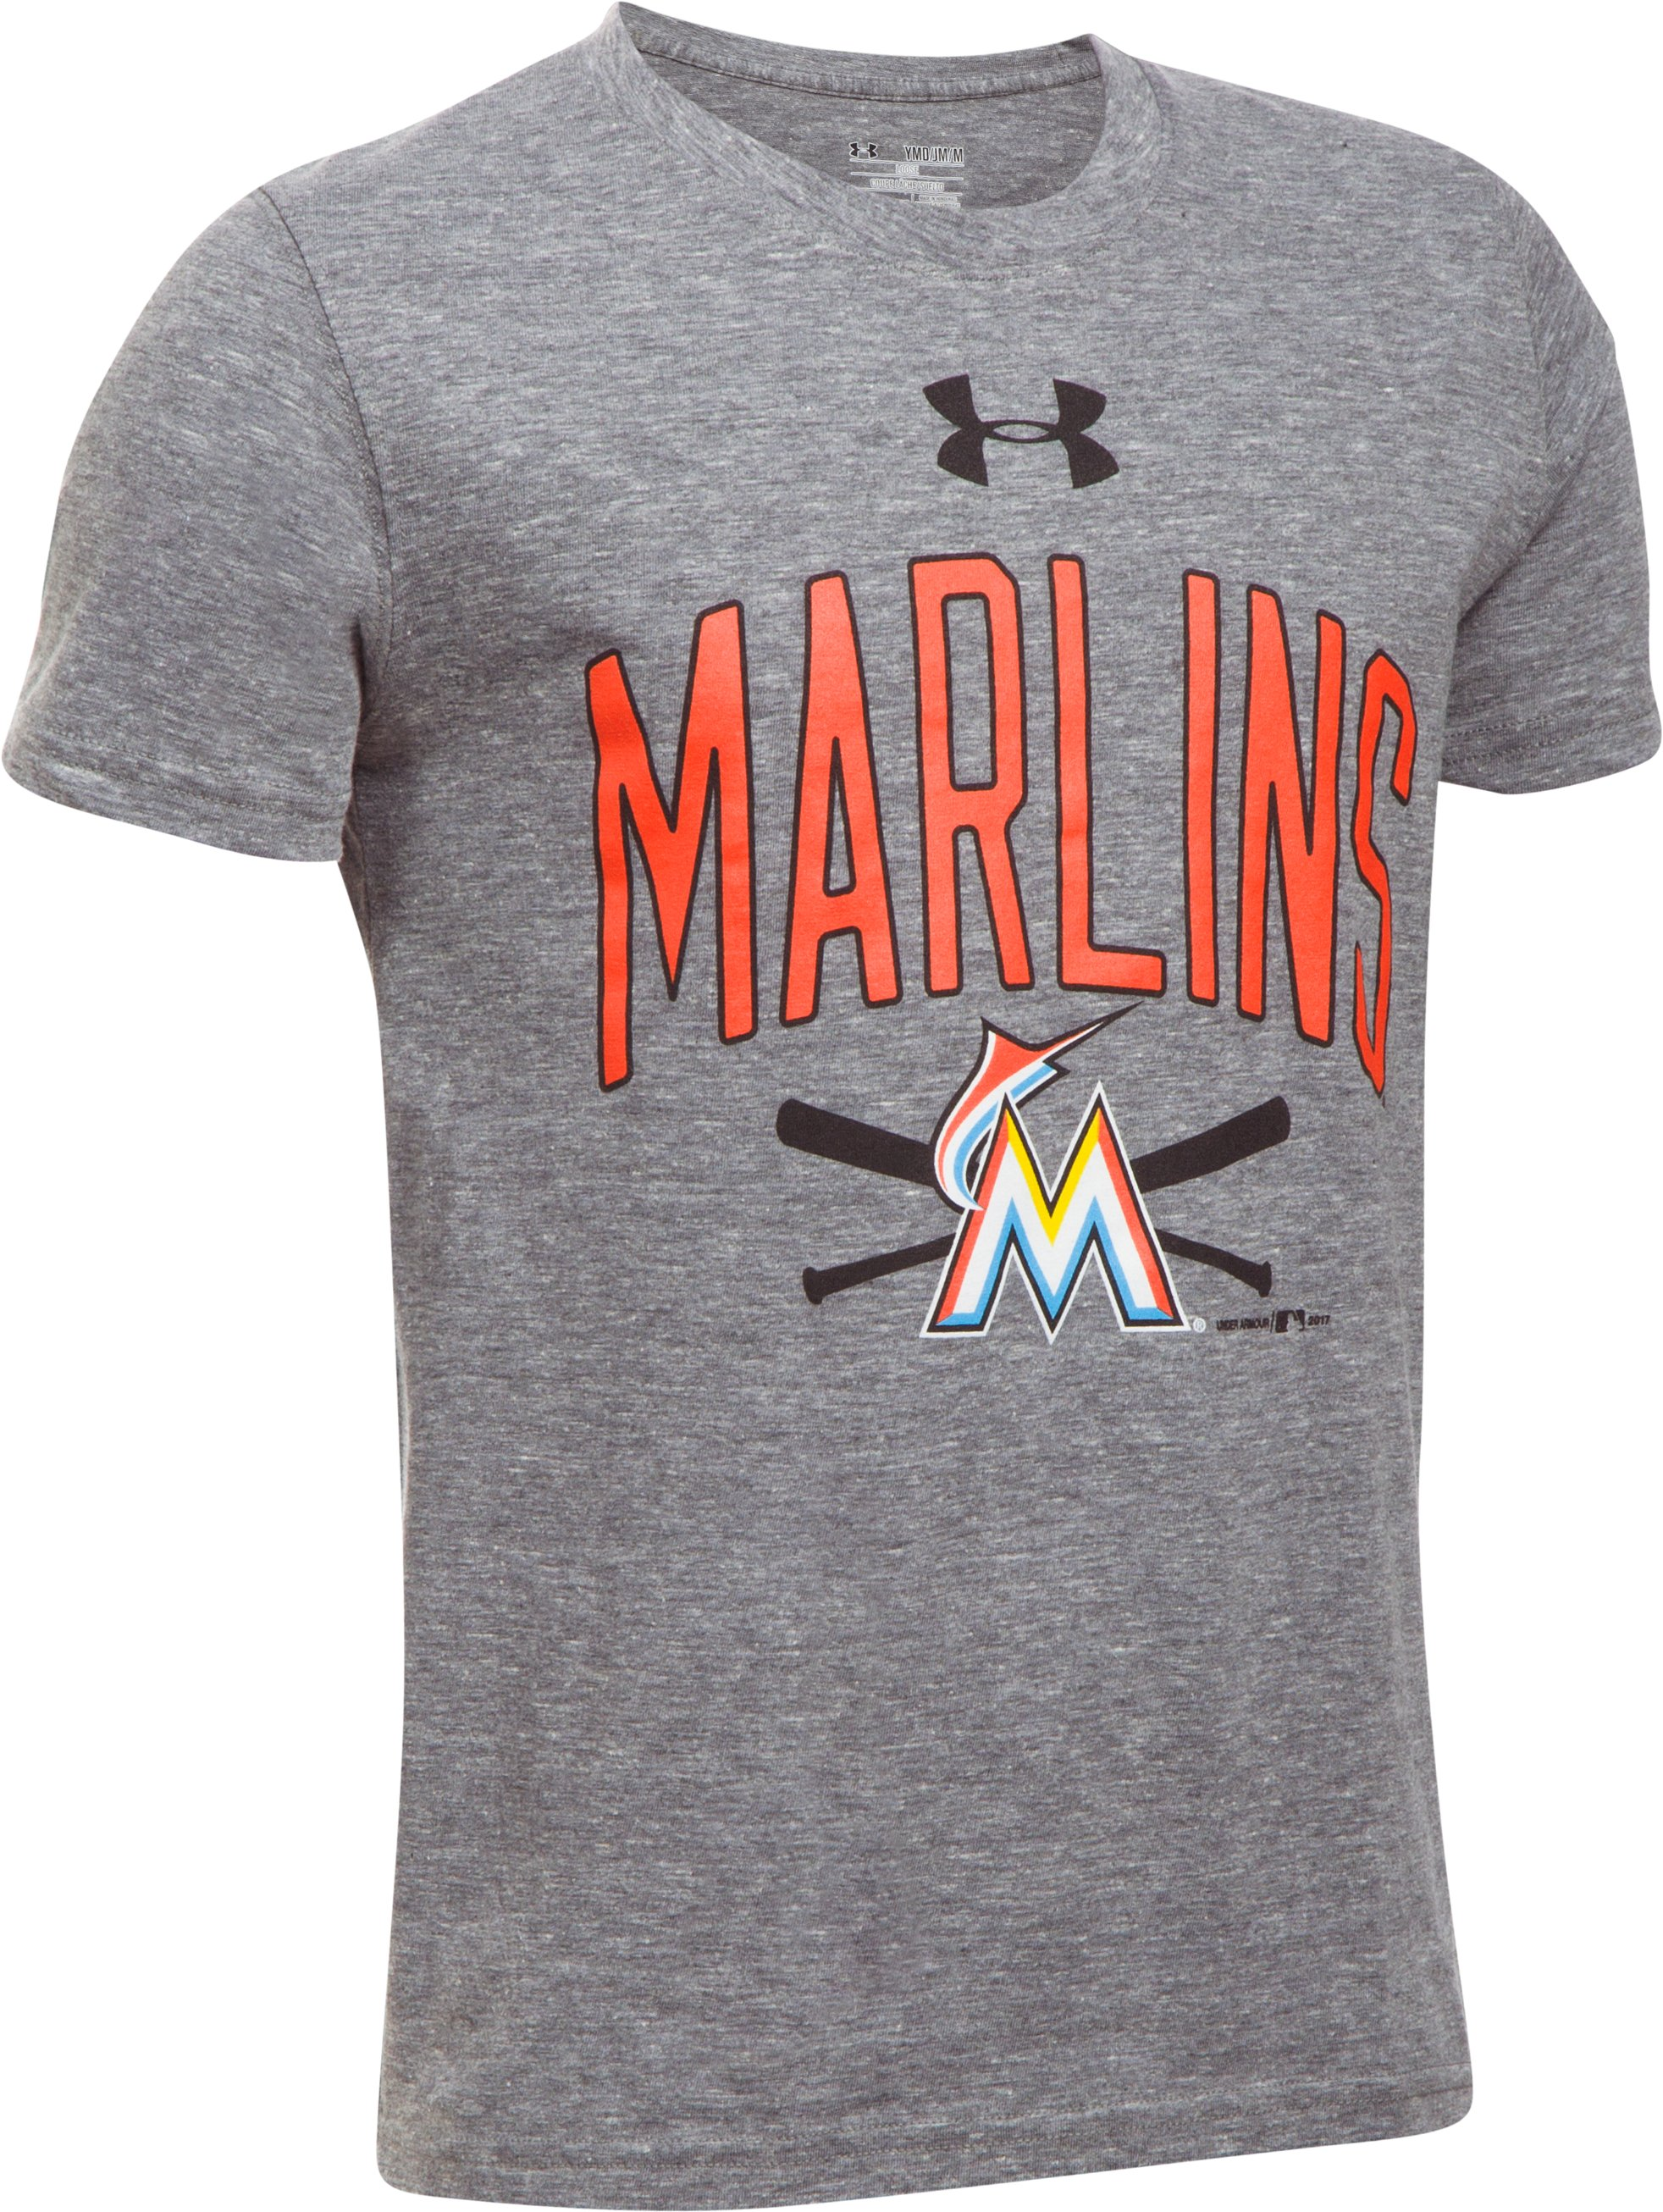 Boys' Miami Marlins Tri-Blend T-Shirt, True Gray Heather,